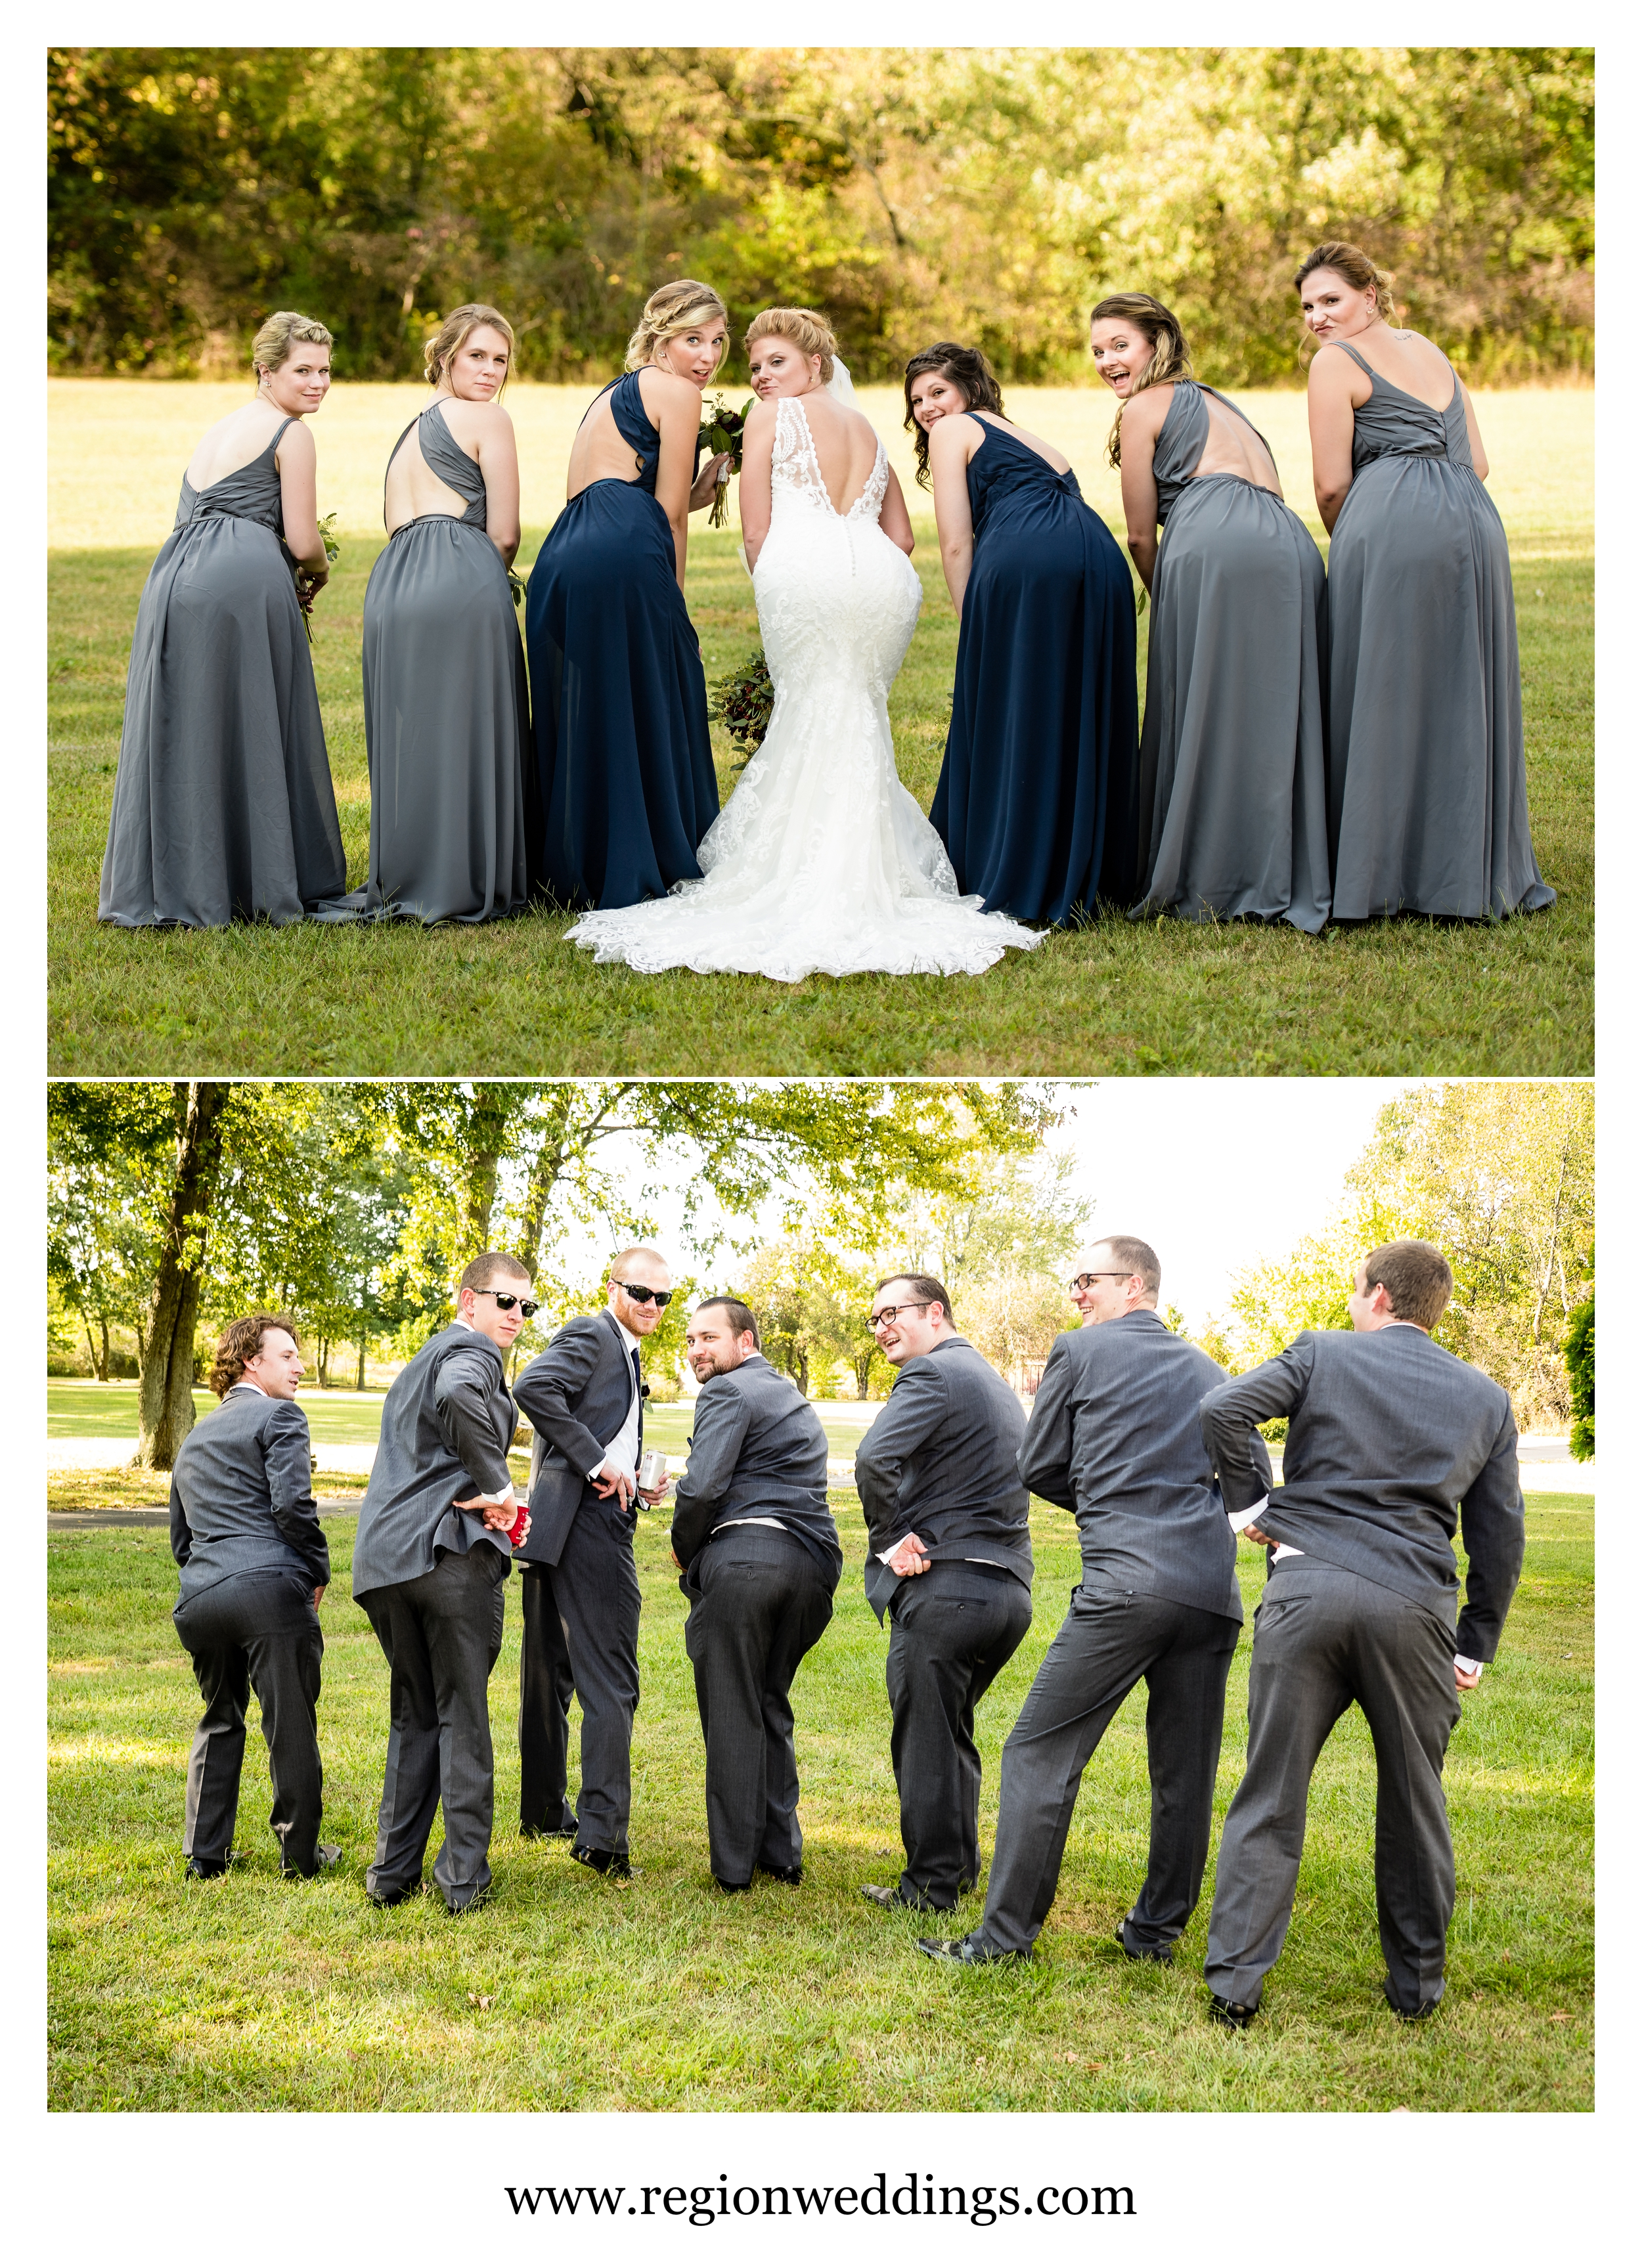 Too sexy for their suits - the groomsmen try to show up the bridesmaids.